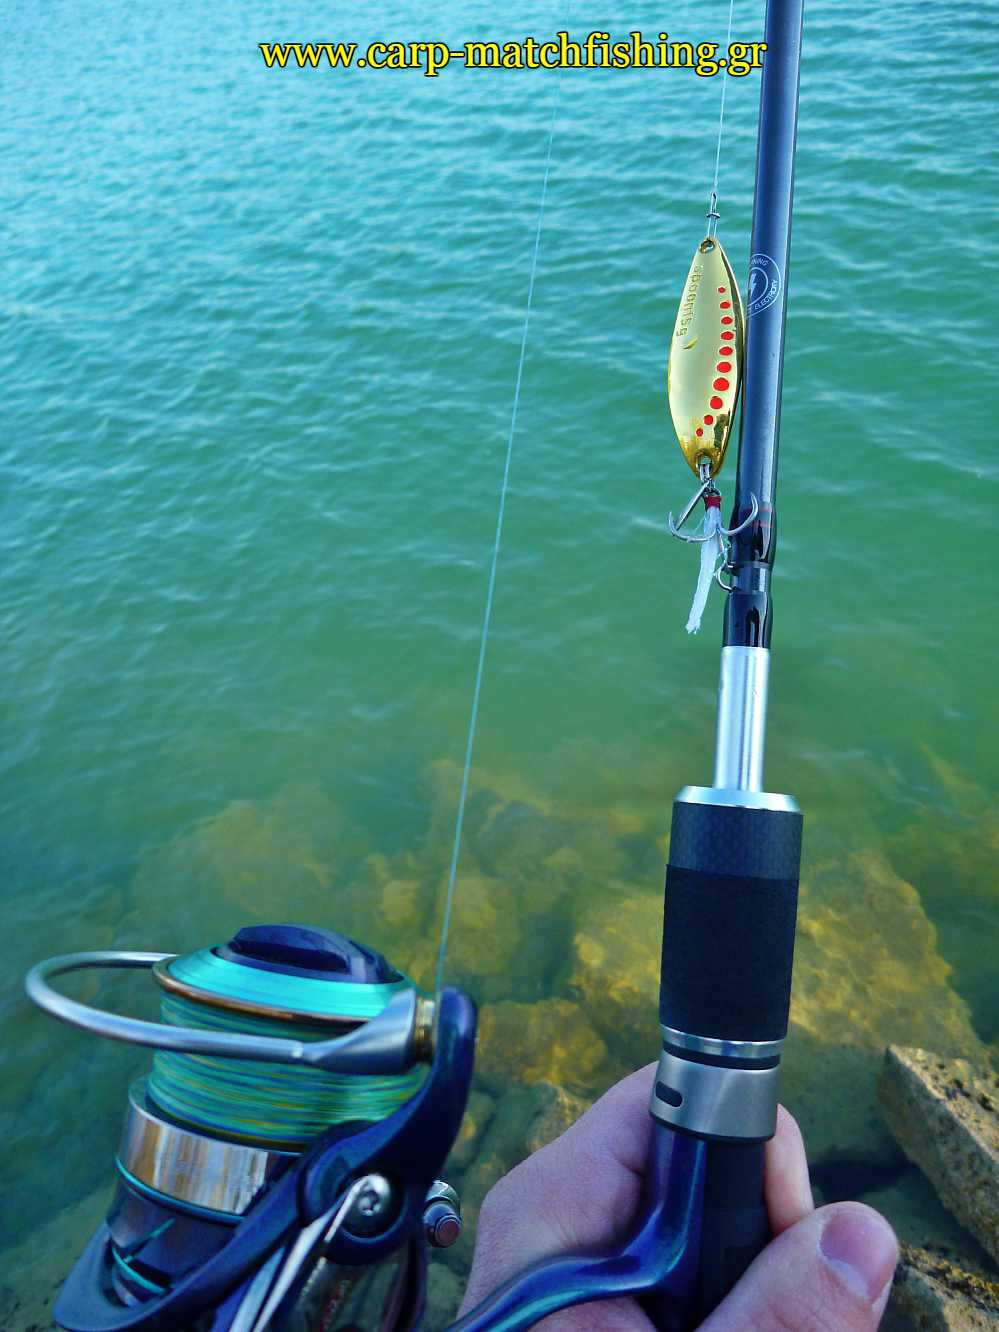 reel-braid-spoon-lrf-carpmatchfishing